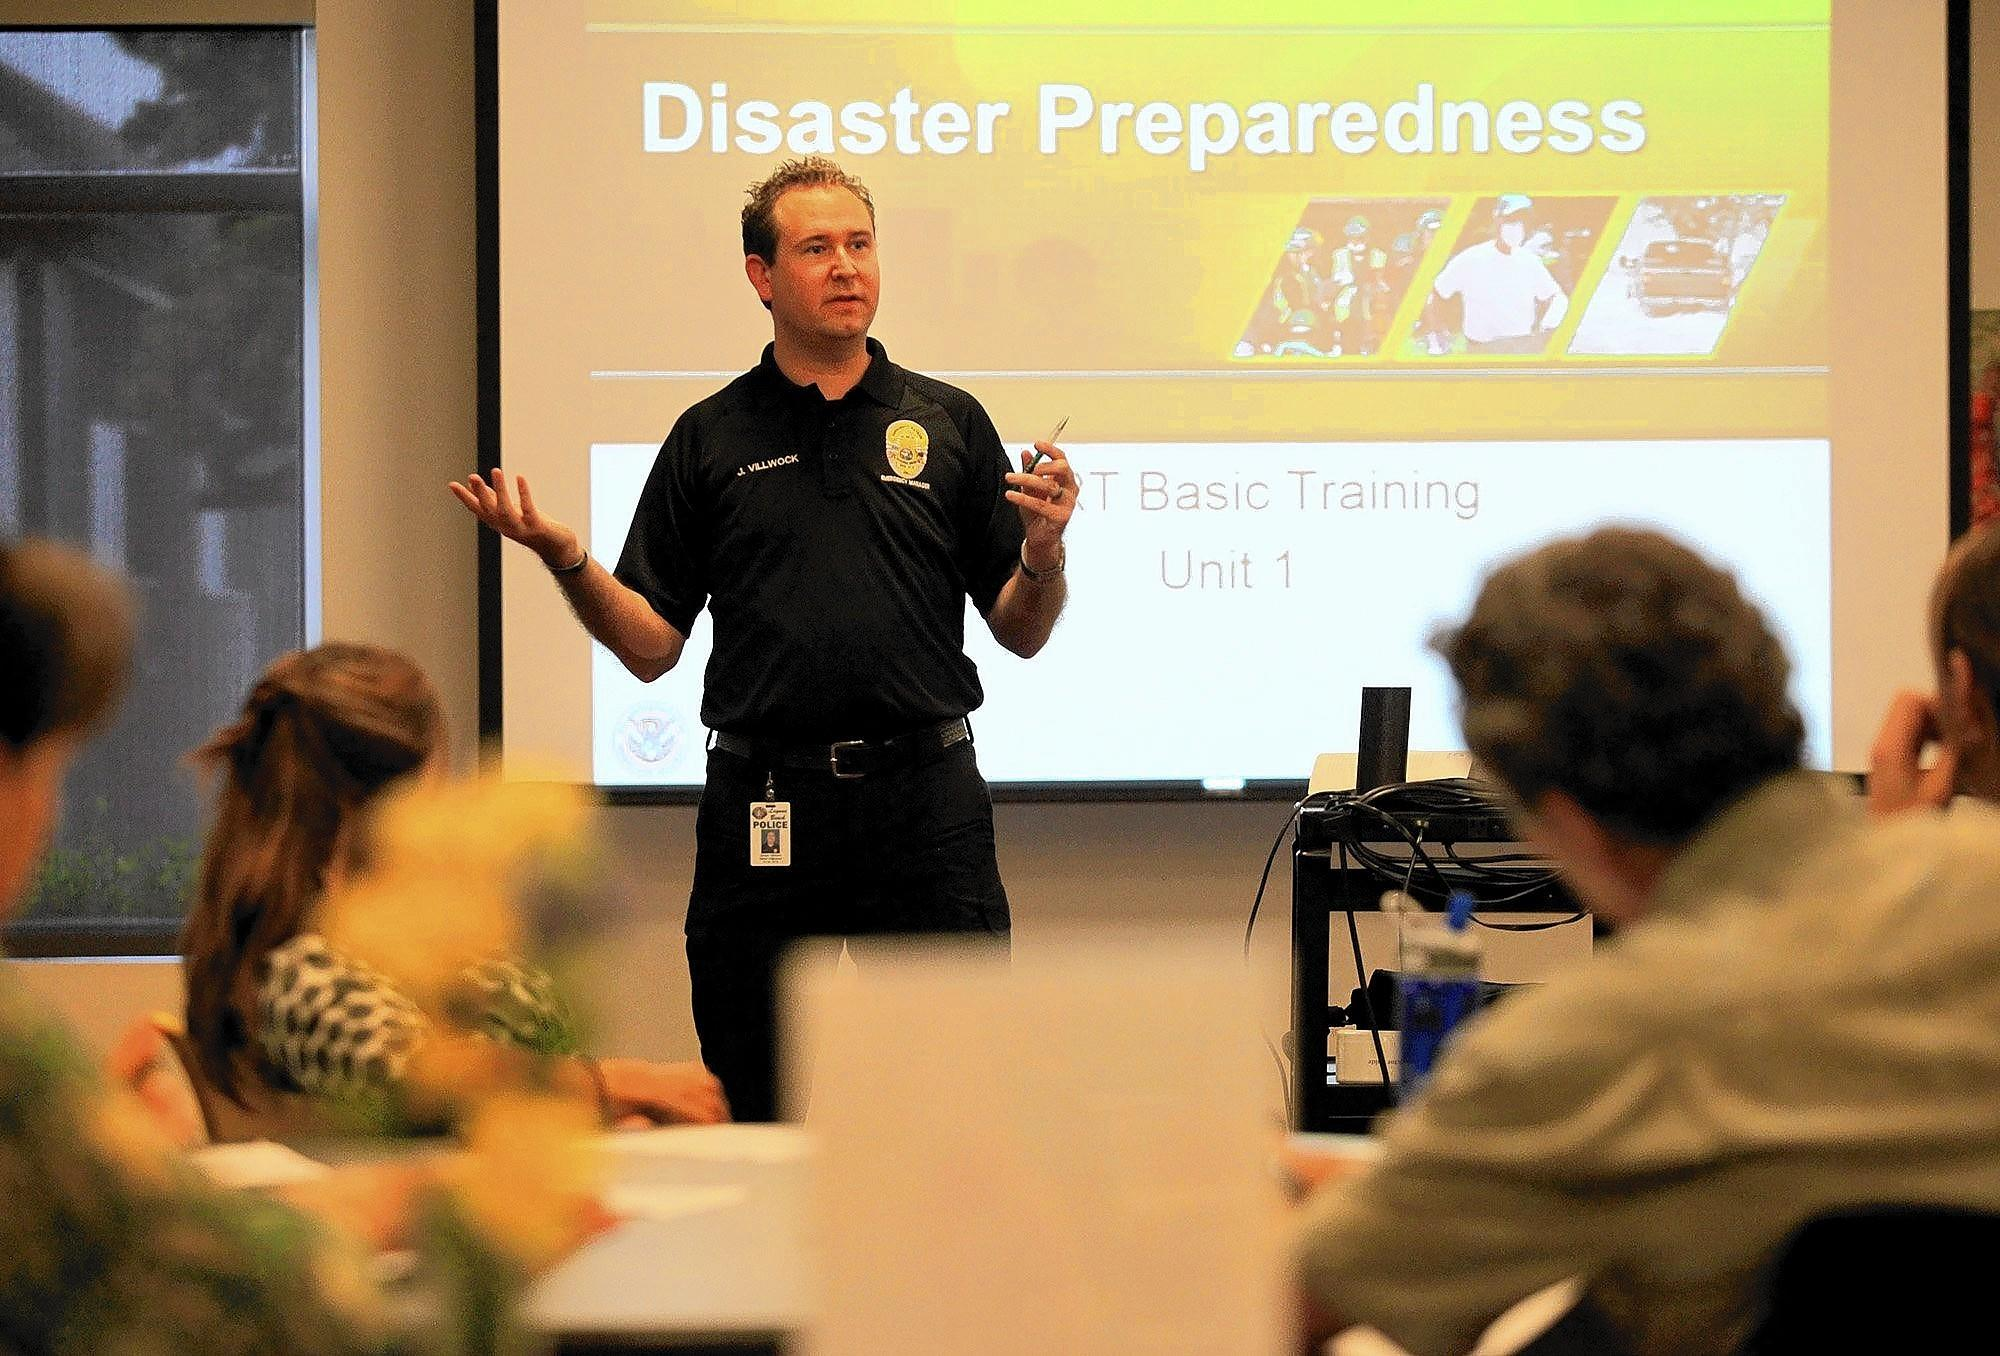 Jordan Villwock, Laguna Beach Police emergency management coordinator, speaks during a Community Emergency Response Team (CERT) class held at the Suzi Q Center in Laguna Beach on Wednesday.